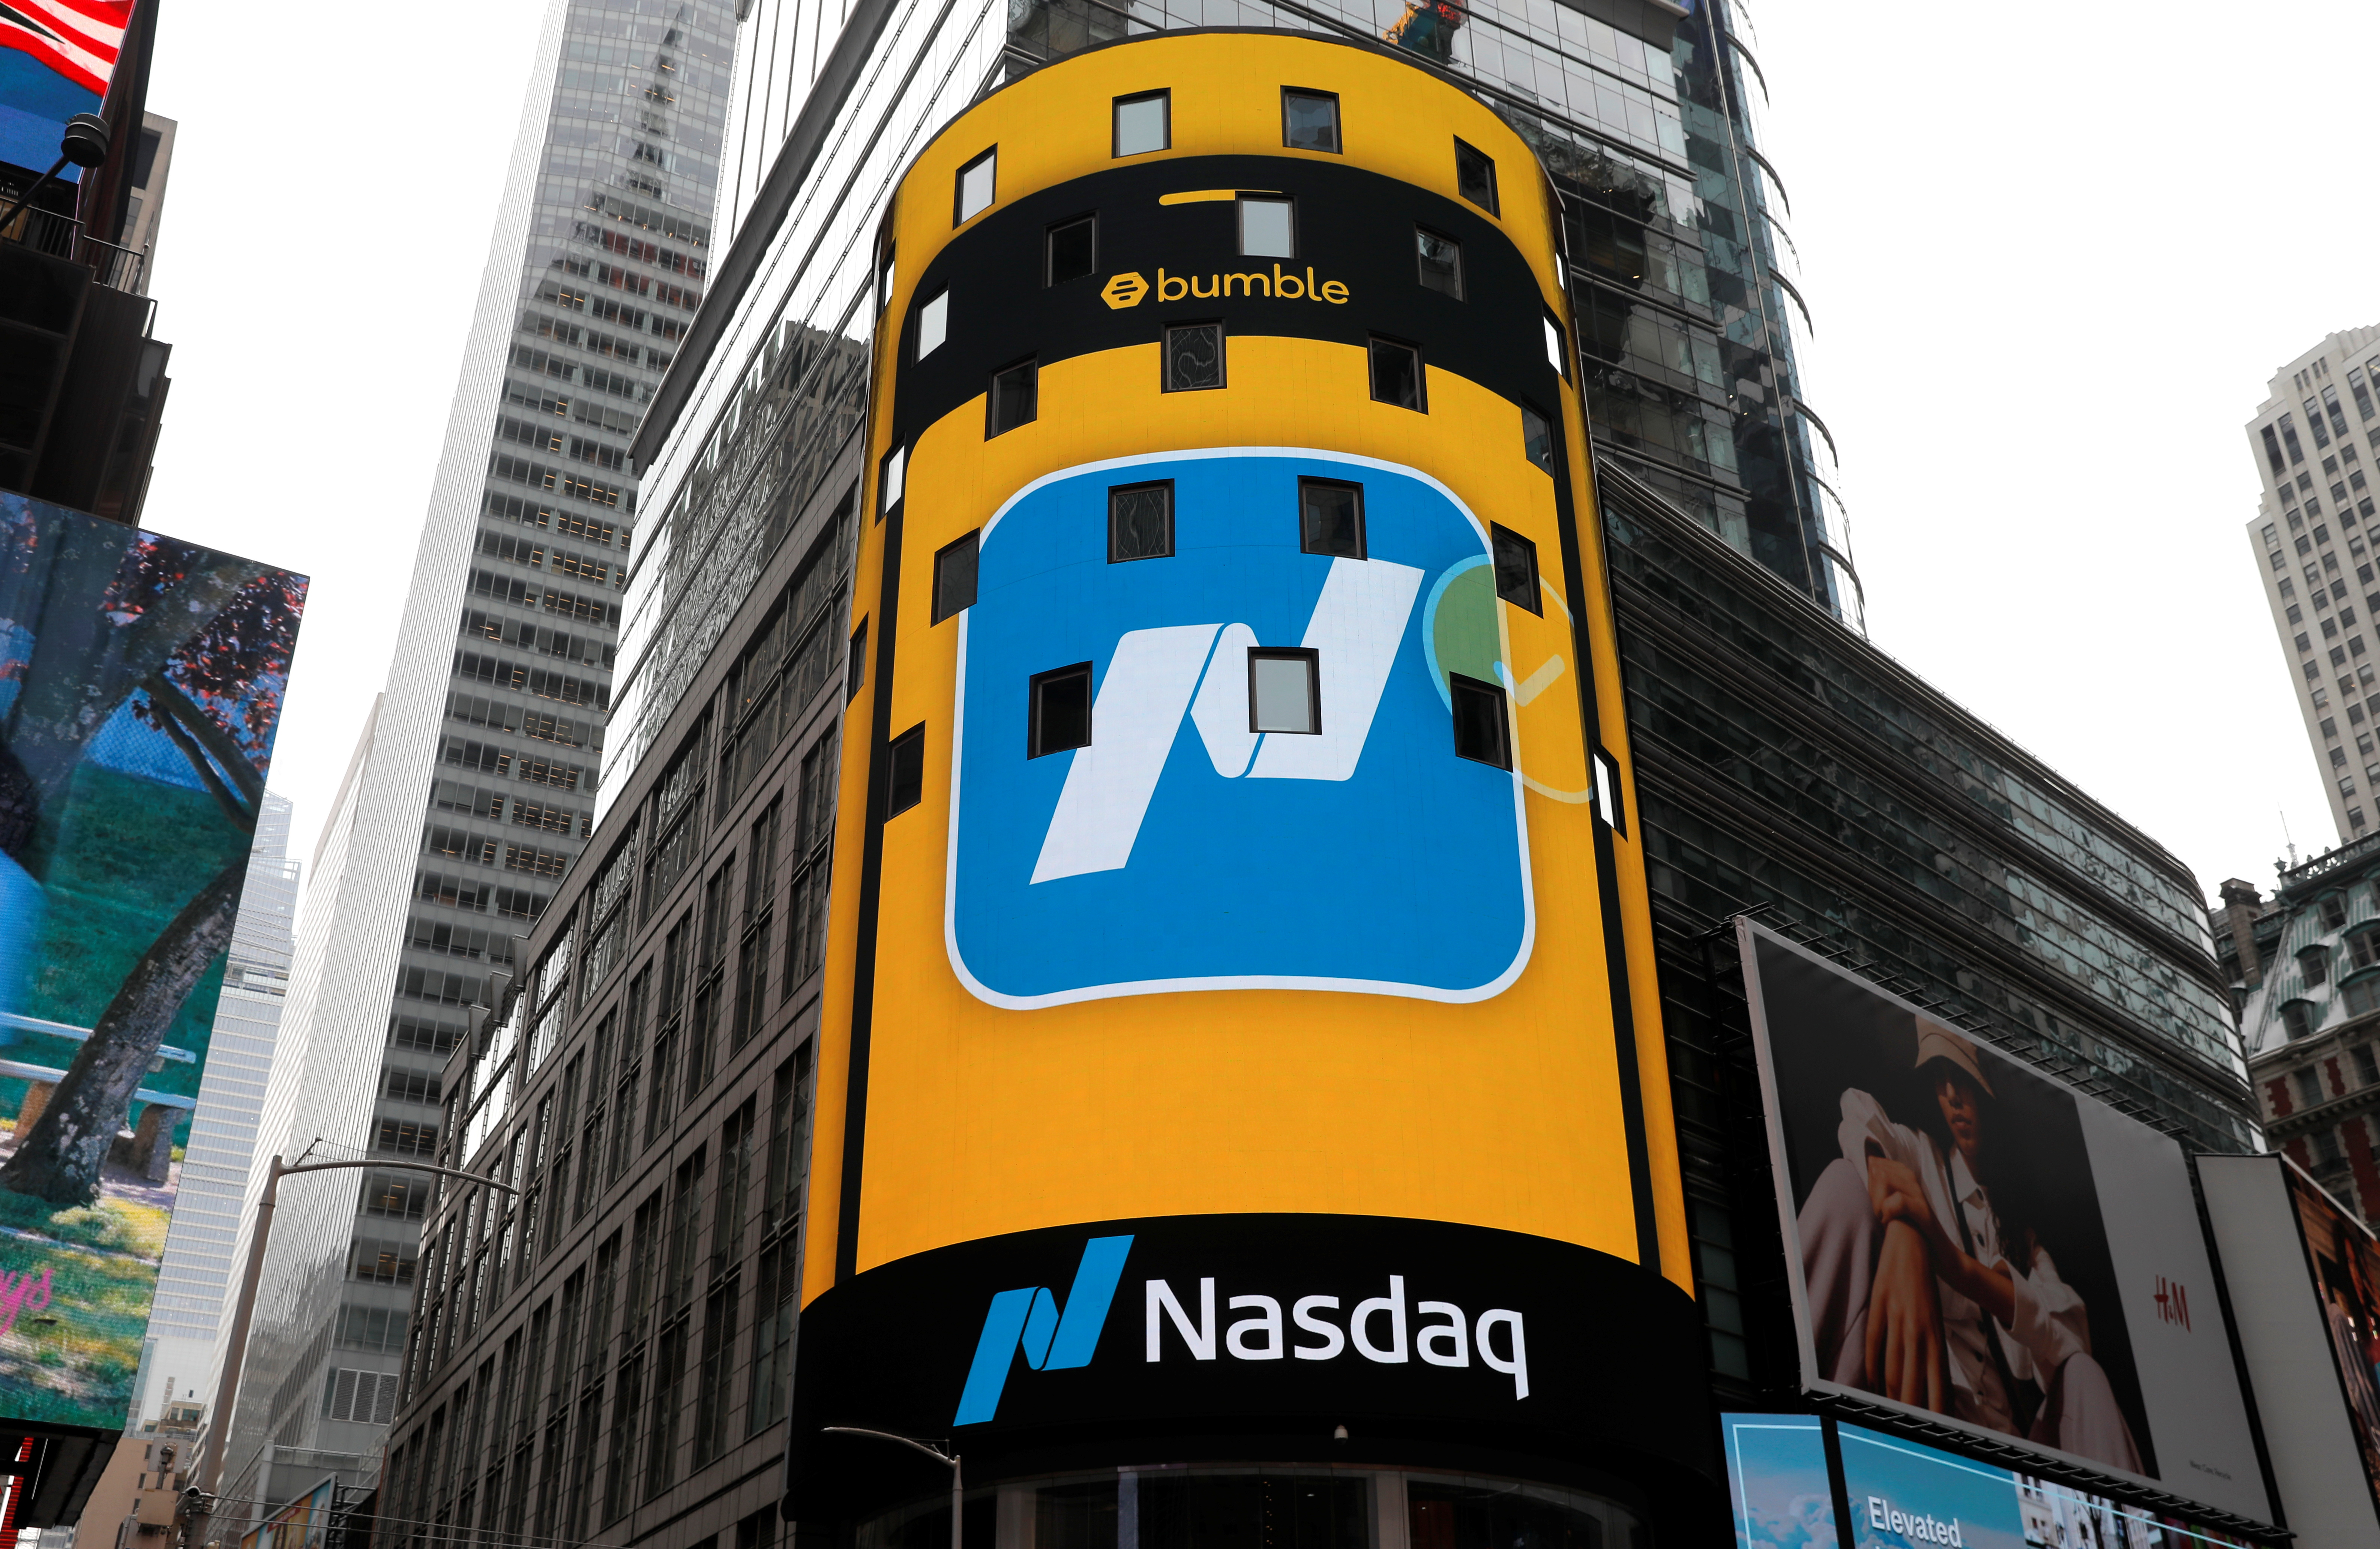 The display outside the Nasdaq MarketSite is pictured as the dating app operator Bumble Inc. (BMBL) made its debut on the Nasdaq stock exchange during the company's IPO in New York City, New York, U.S., February 11, 2021. REUTERS/Mike Segar